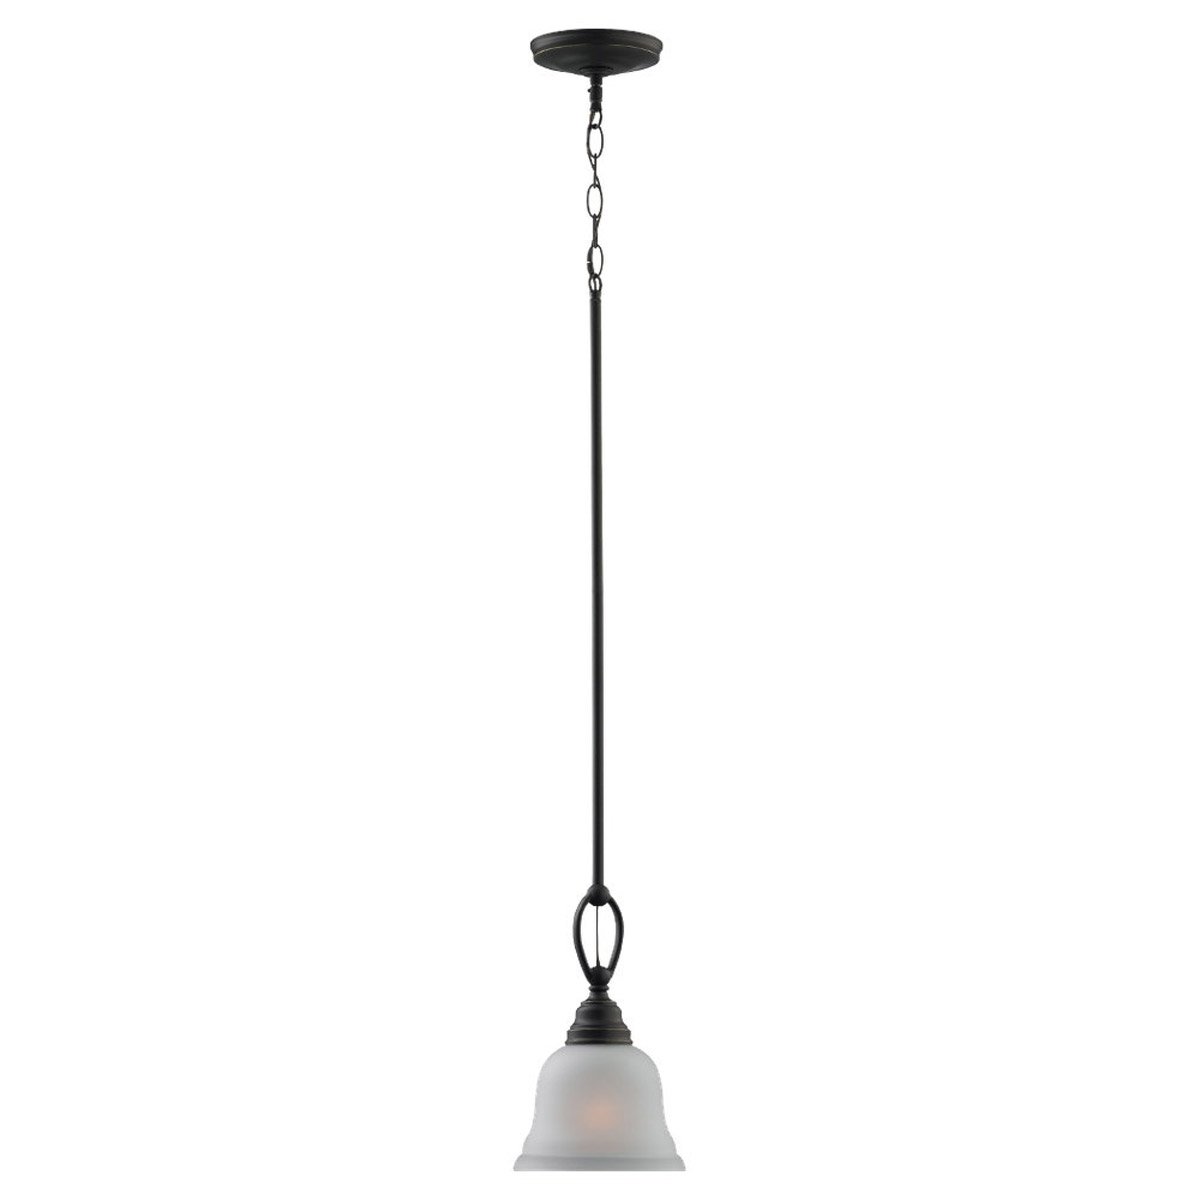 Sea Gull Lighting Wheaton 1 Light Mini Pendant in Heirloom Bronze 61625BLE-782